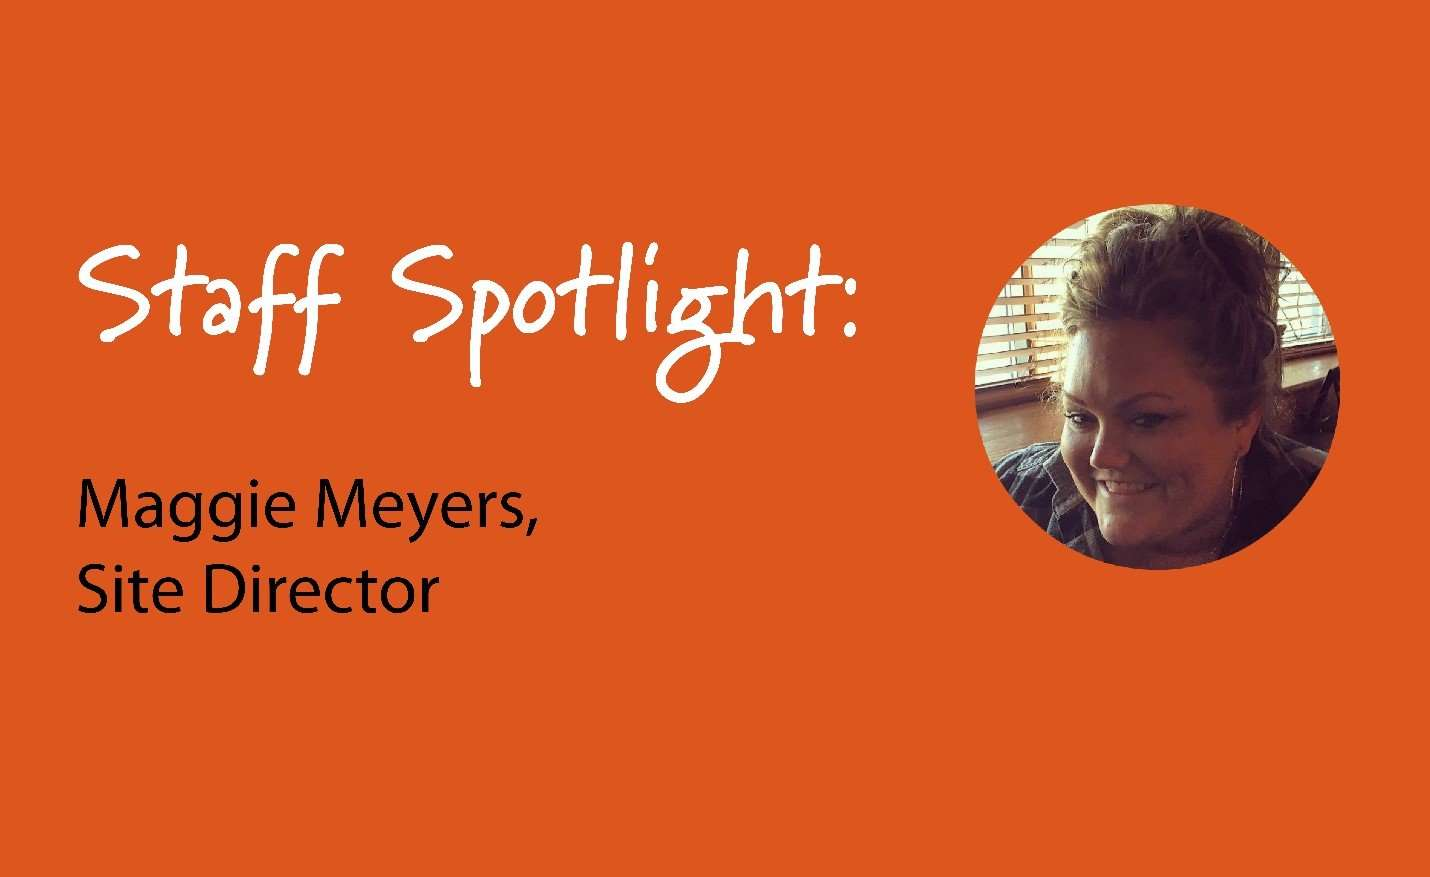 staff spotlight Maggie Meyers